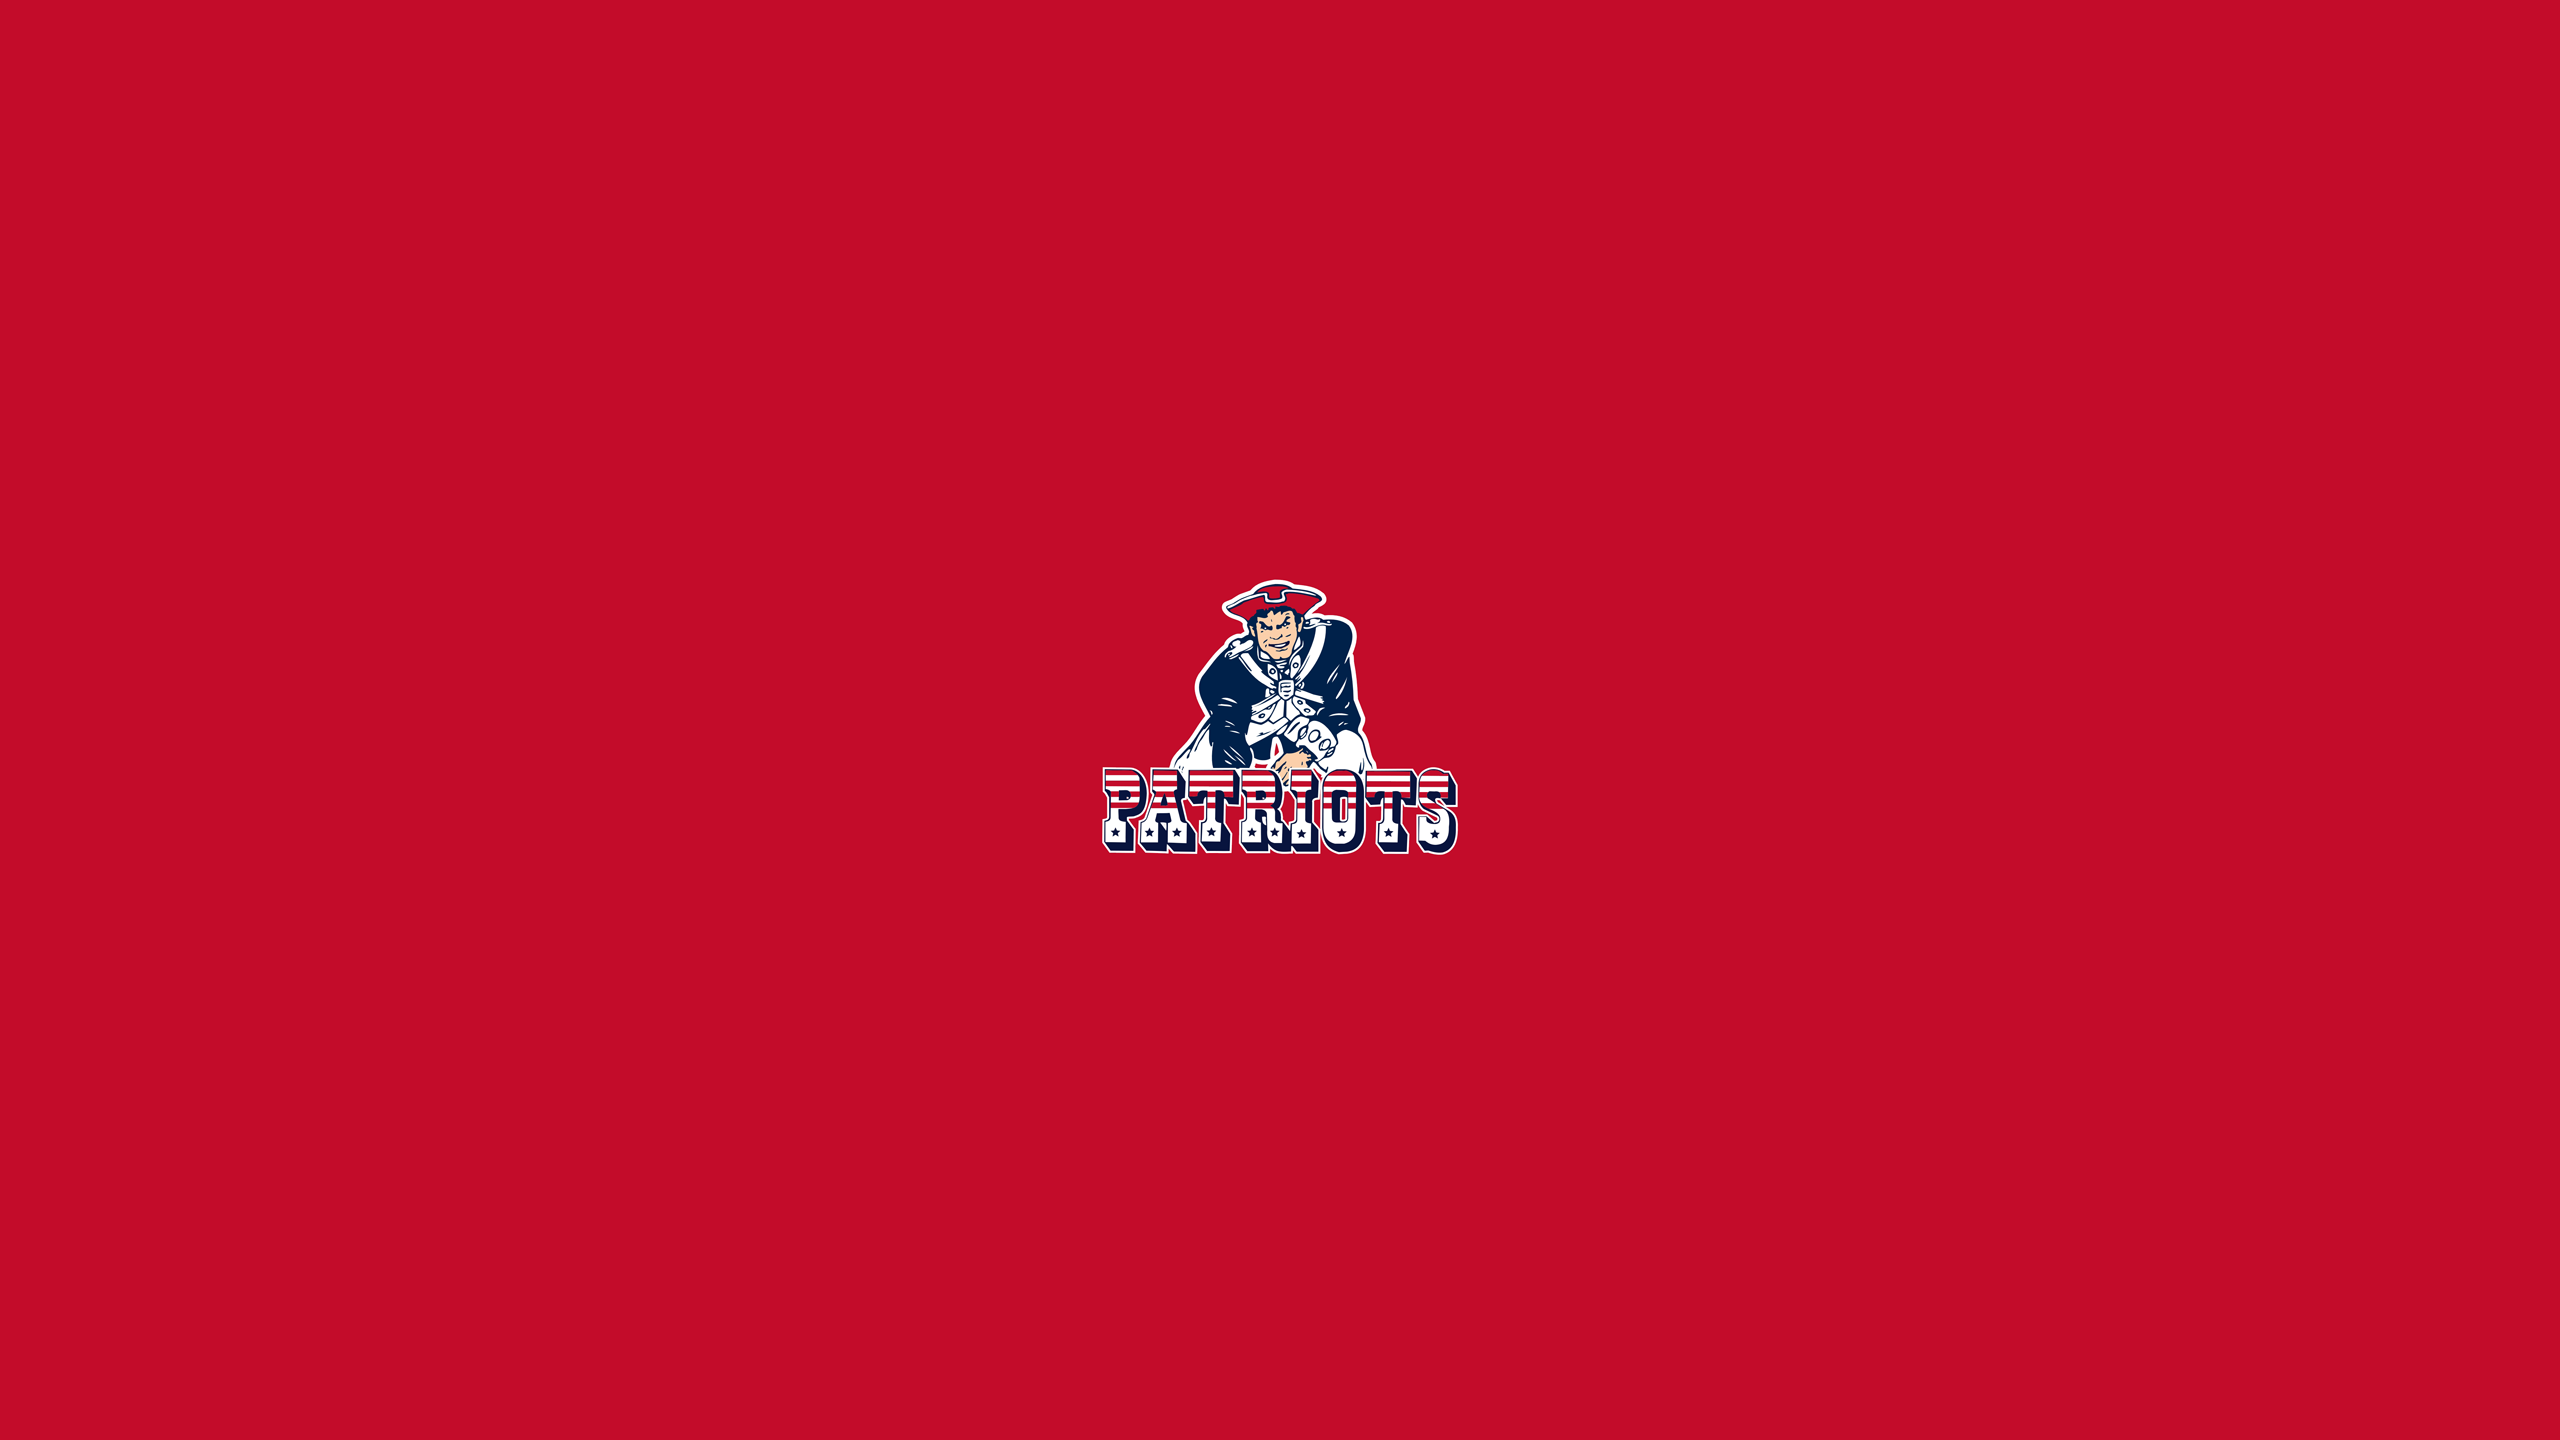 Old New England Patriots Logo Wallpaper New Images Crazy Gallery 2560x1440